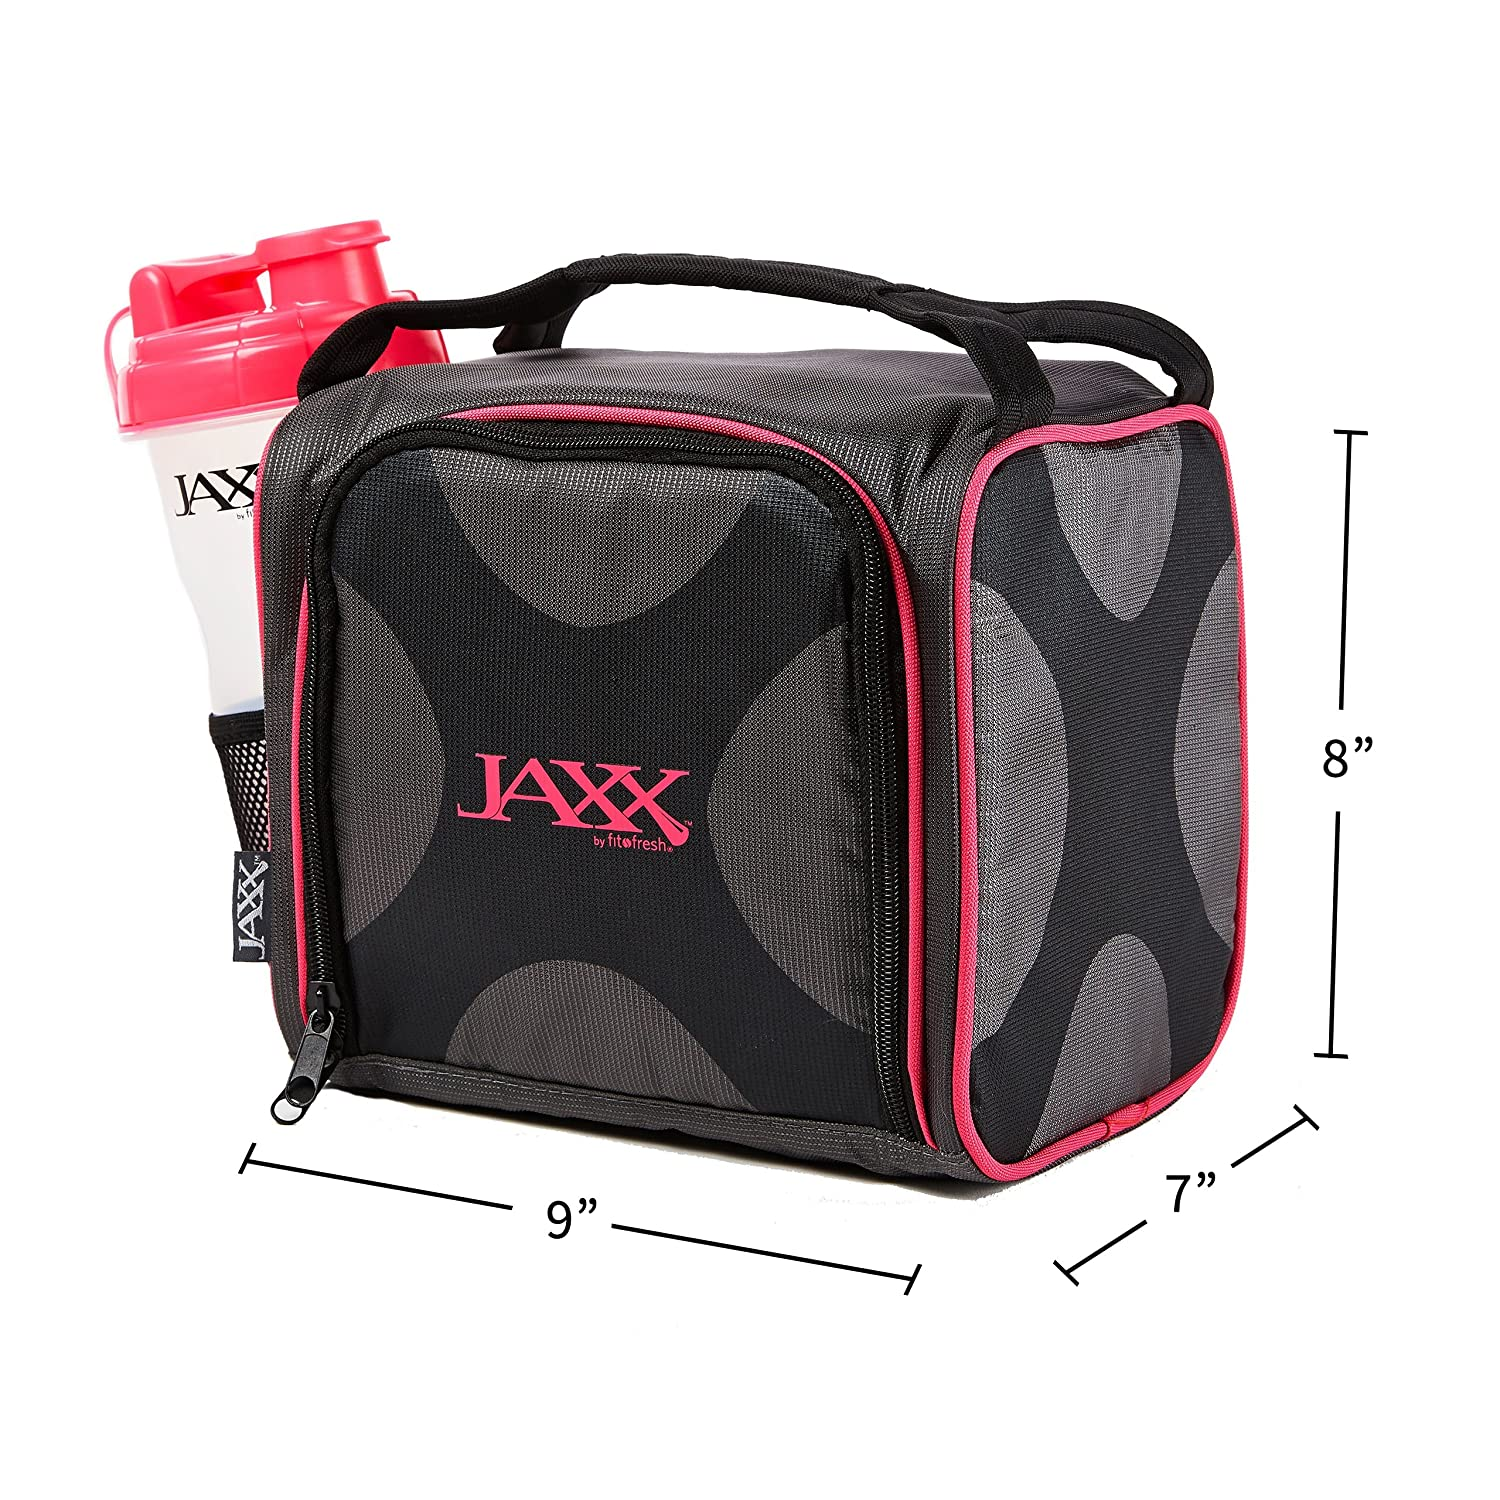 Fit and Fresh Original Jaxx FitPak Insulated Cooler Lunch Box Meal Prep Bag with Portion Control